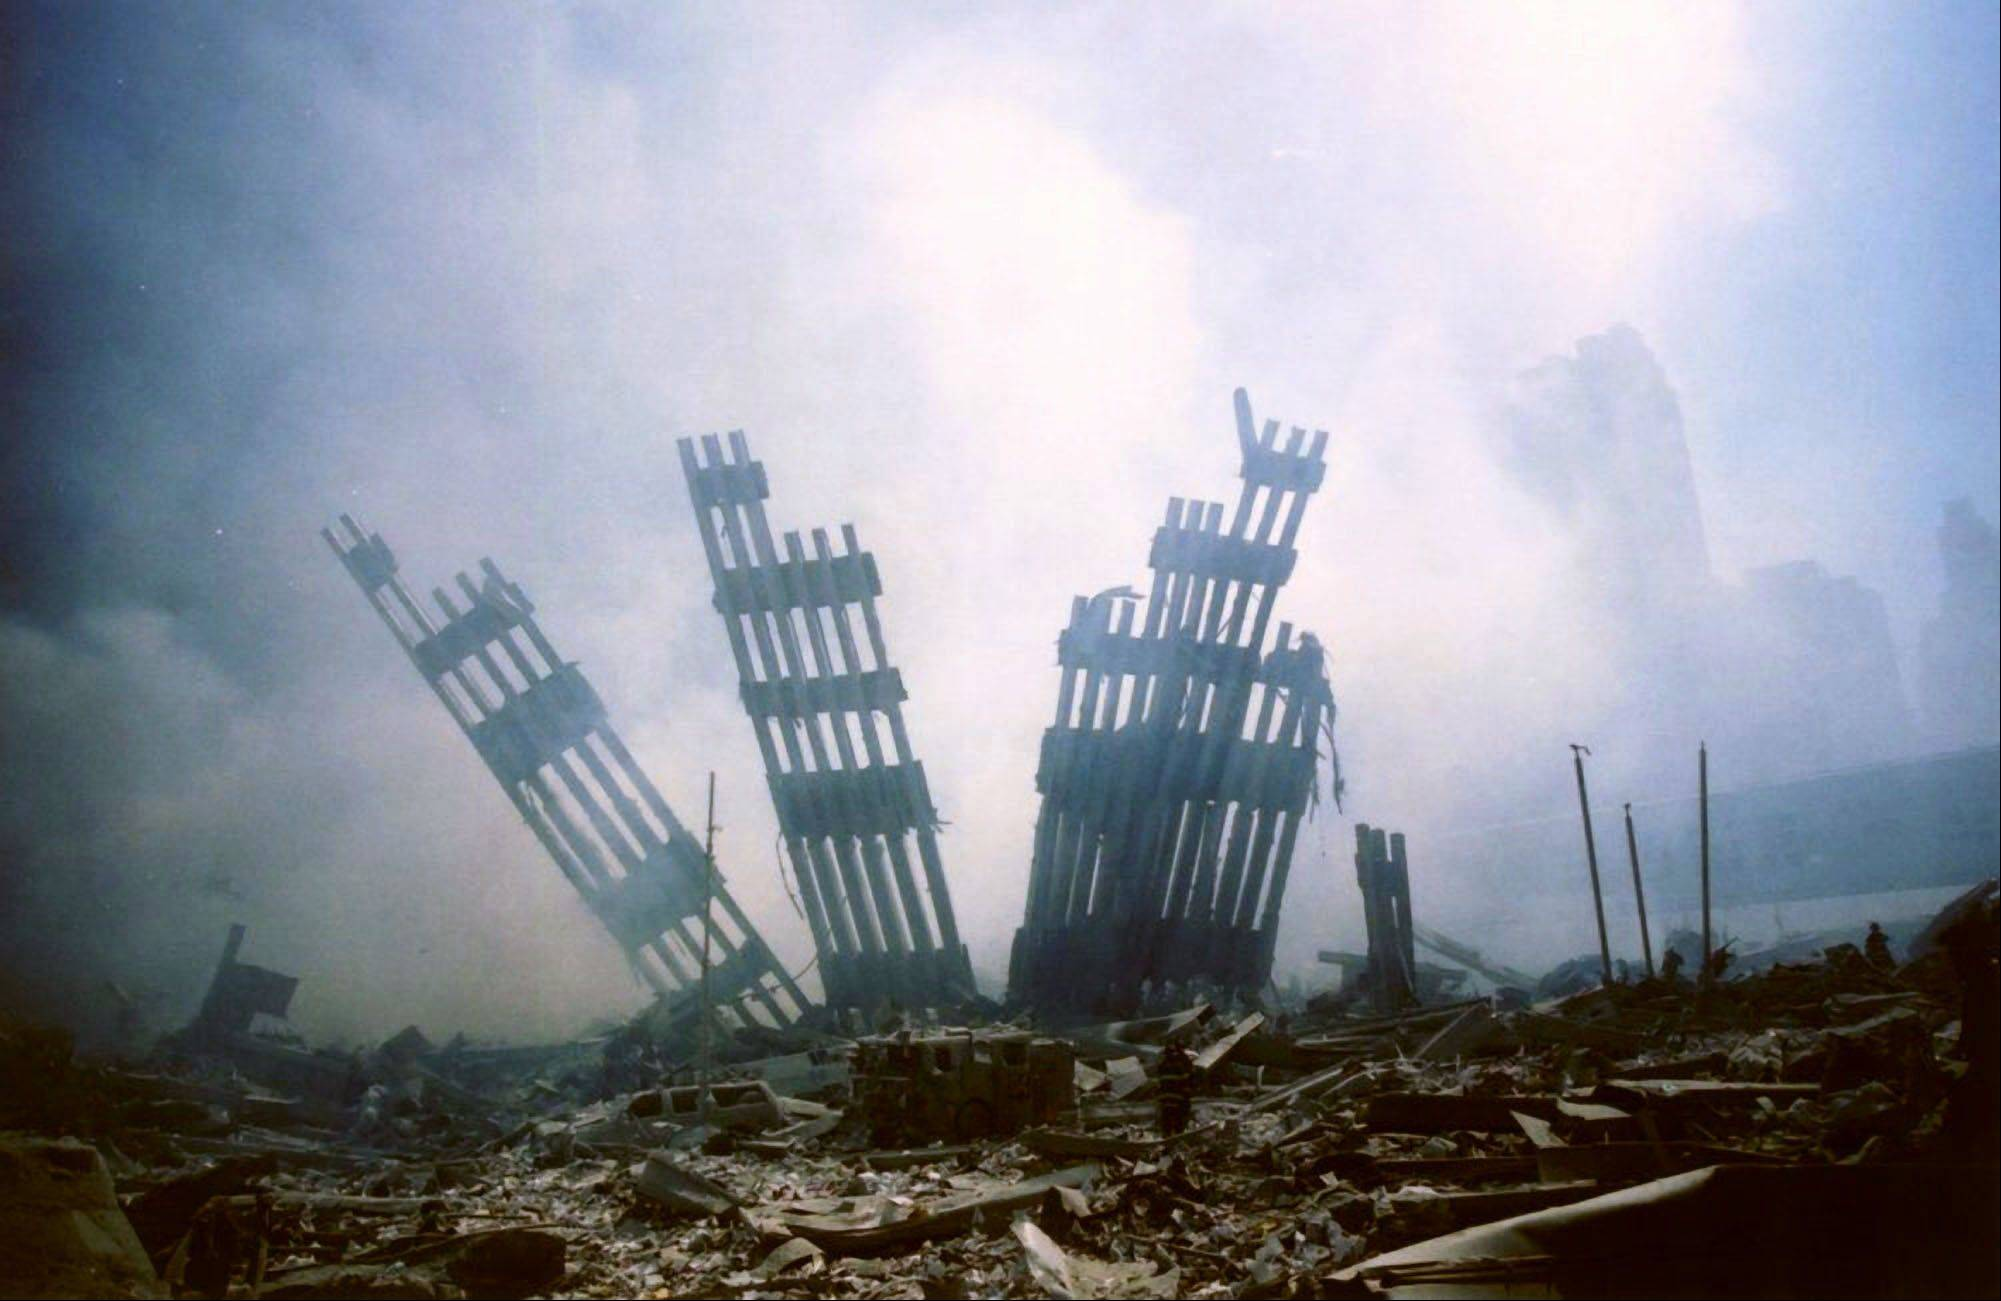 Images: September 11, 2001 Attacks